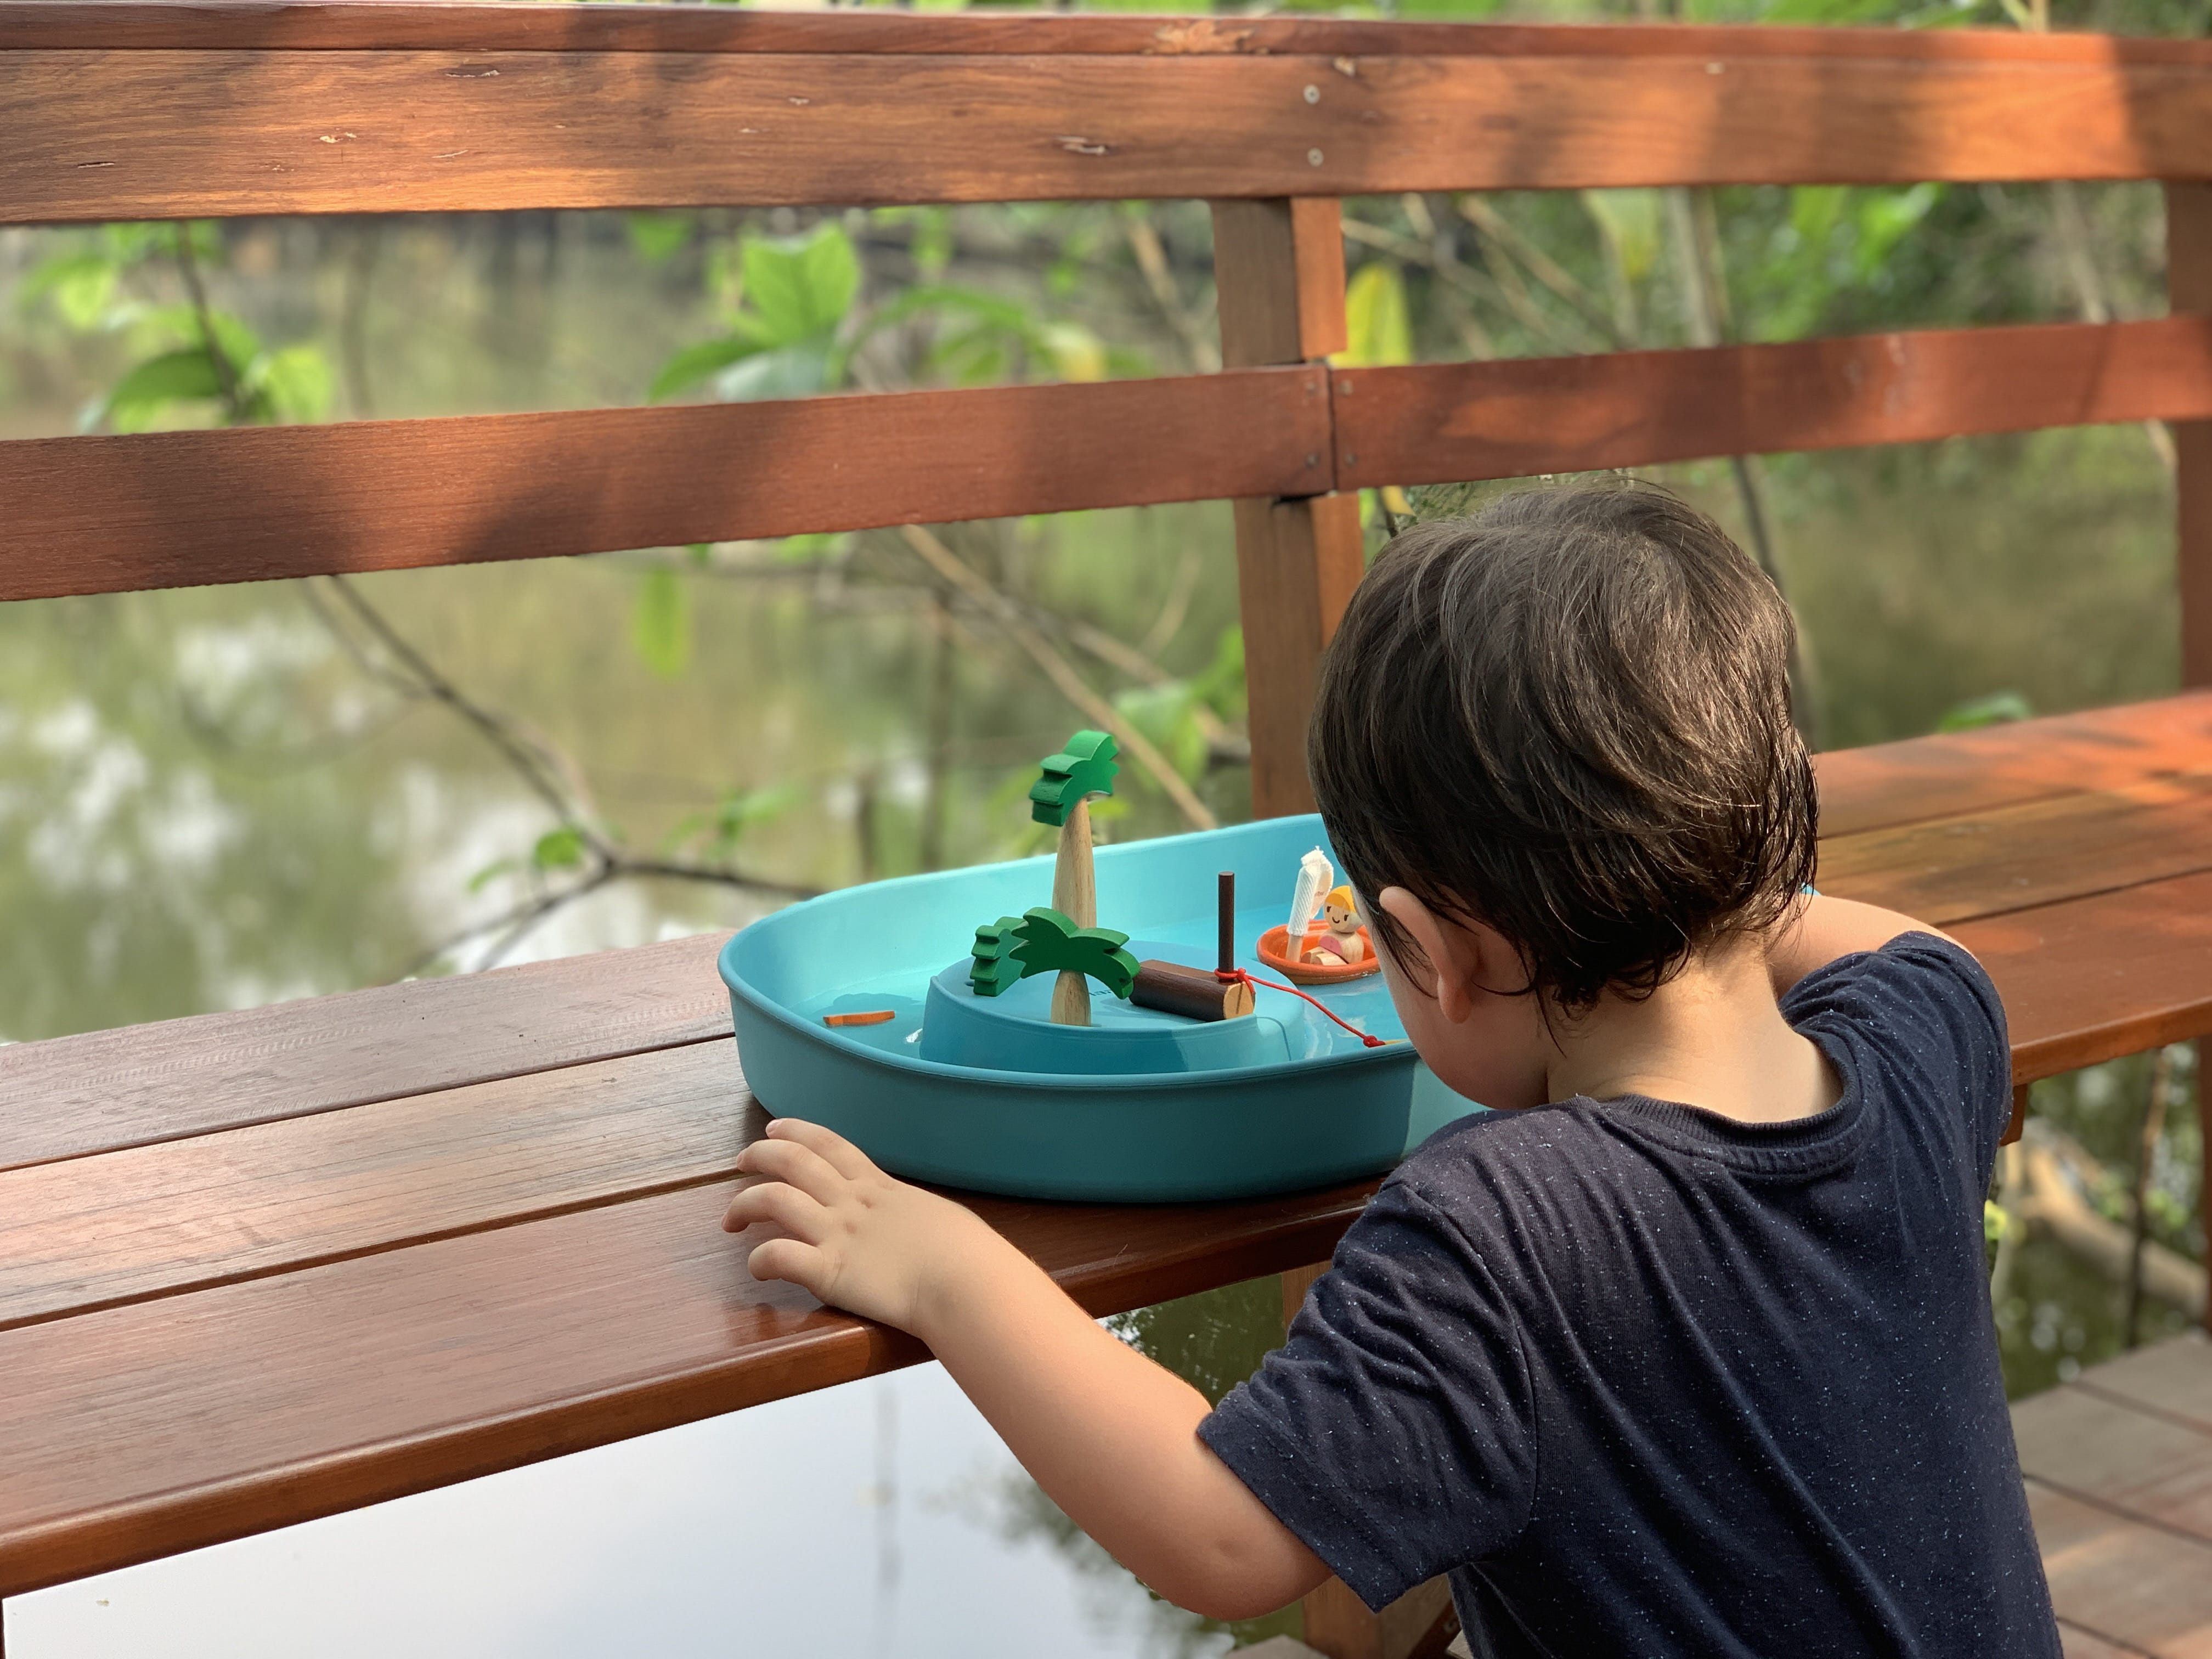 5801_PlanToys_WATER_PLAY_SET_Water_Play_Coordination_Creative_Explore_Fine_Motor_Imagination_3yrs_Wooden_toys_Education_toys_Safety_Toys_Non-toxic_3.jpg